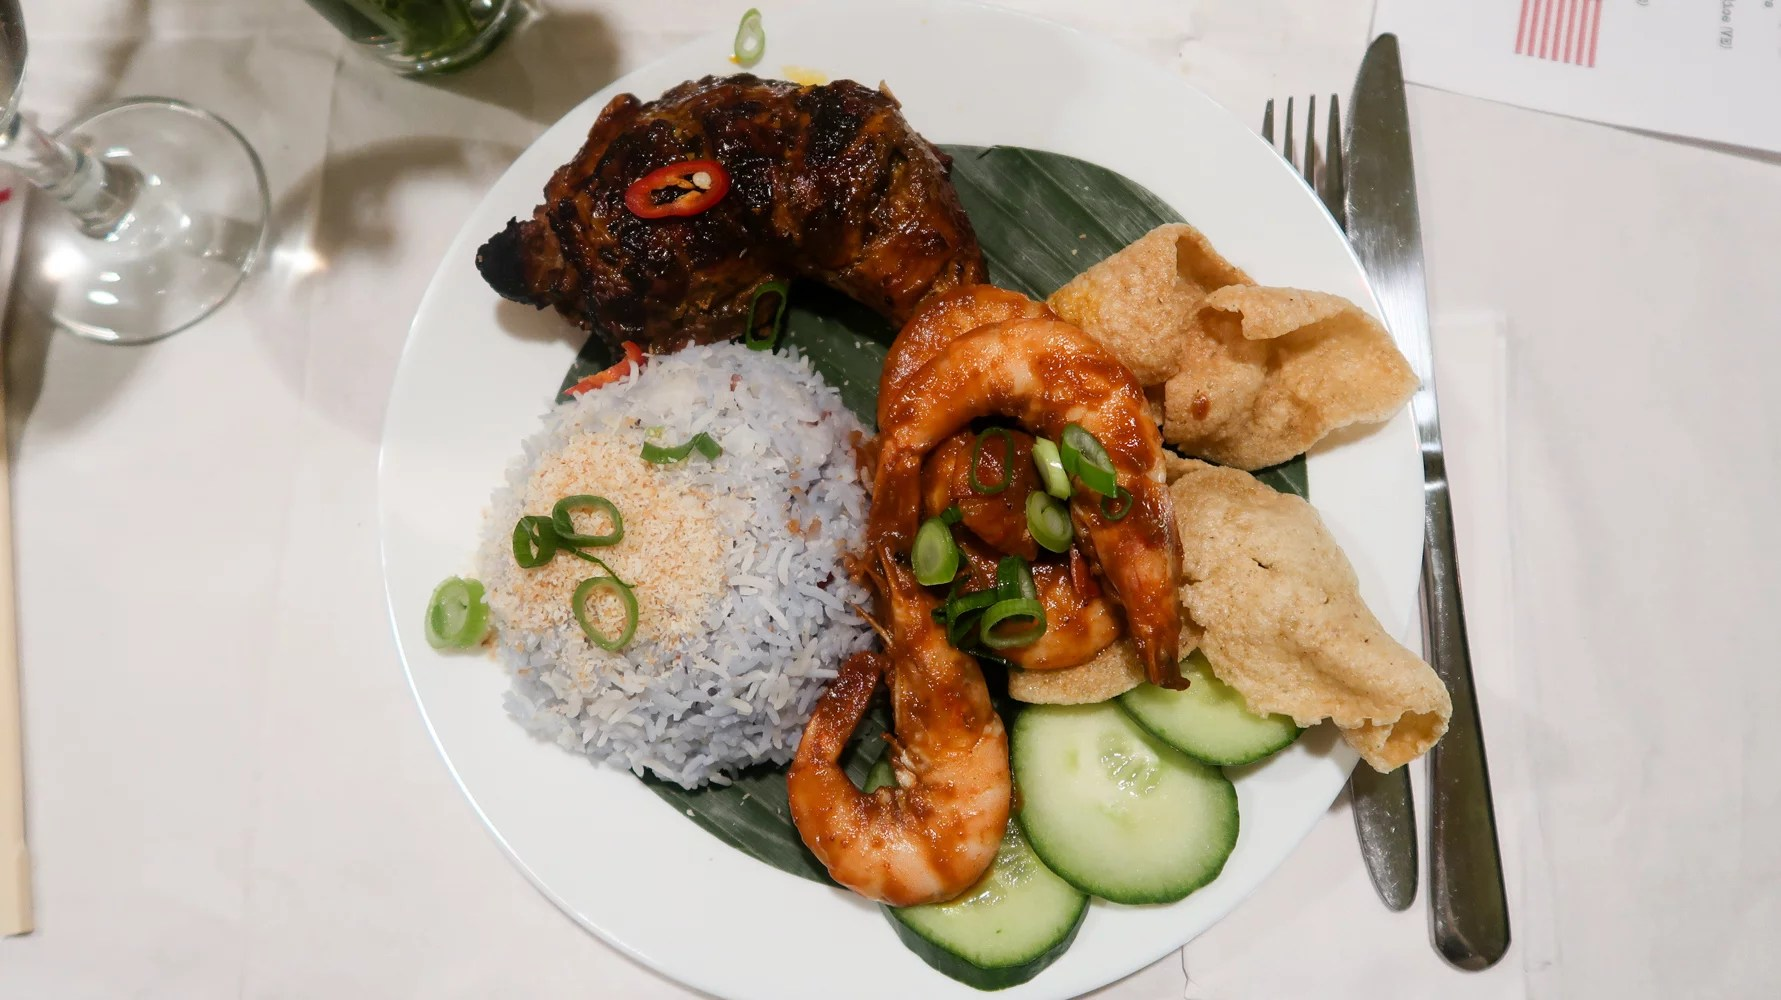 Kampung Bayang supper club